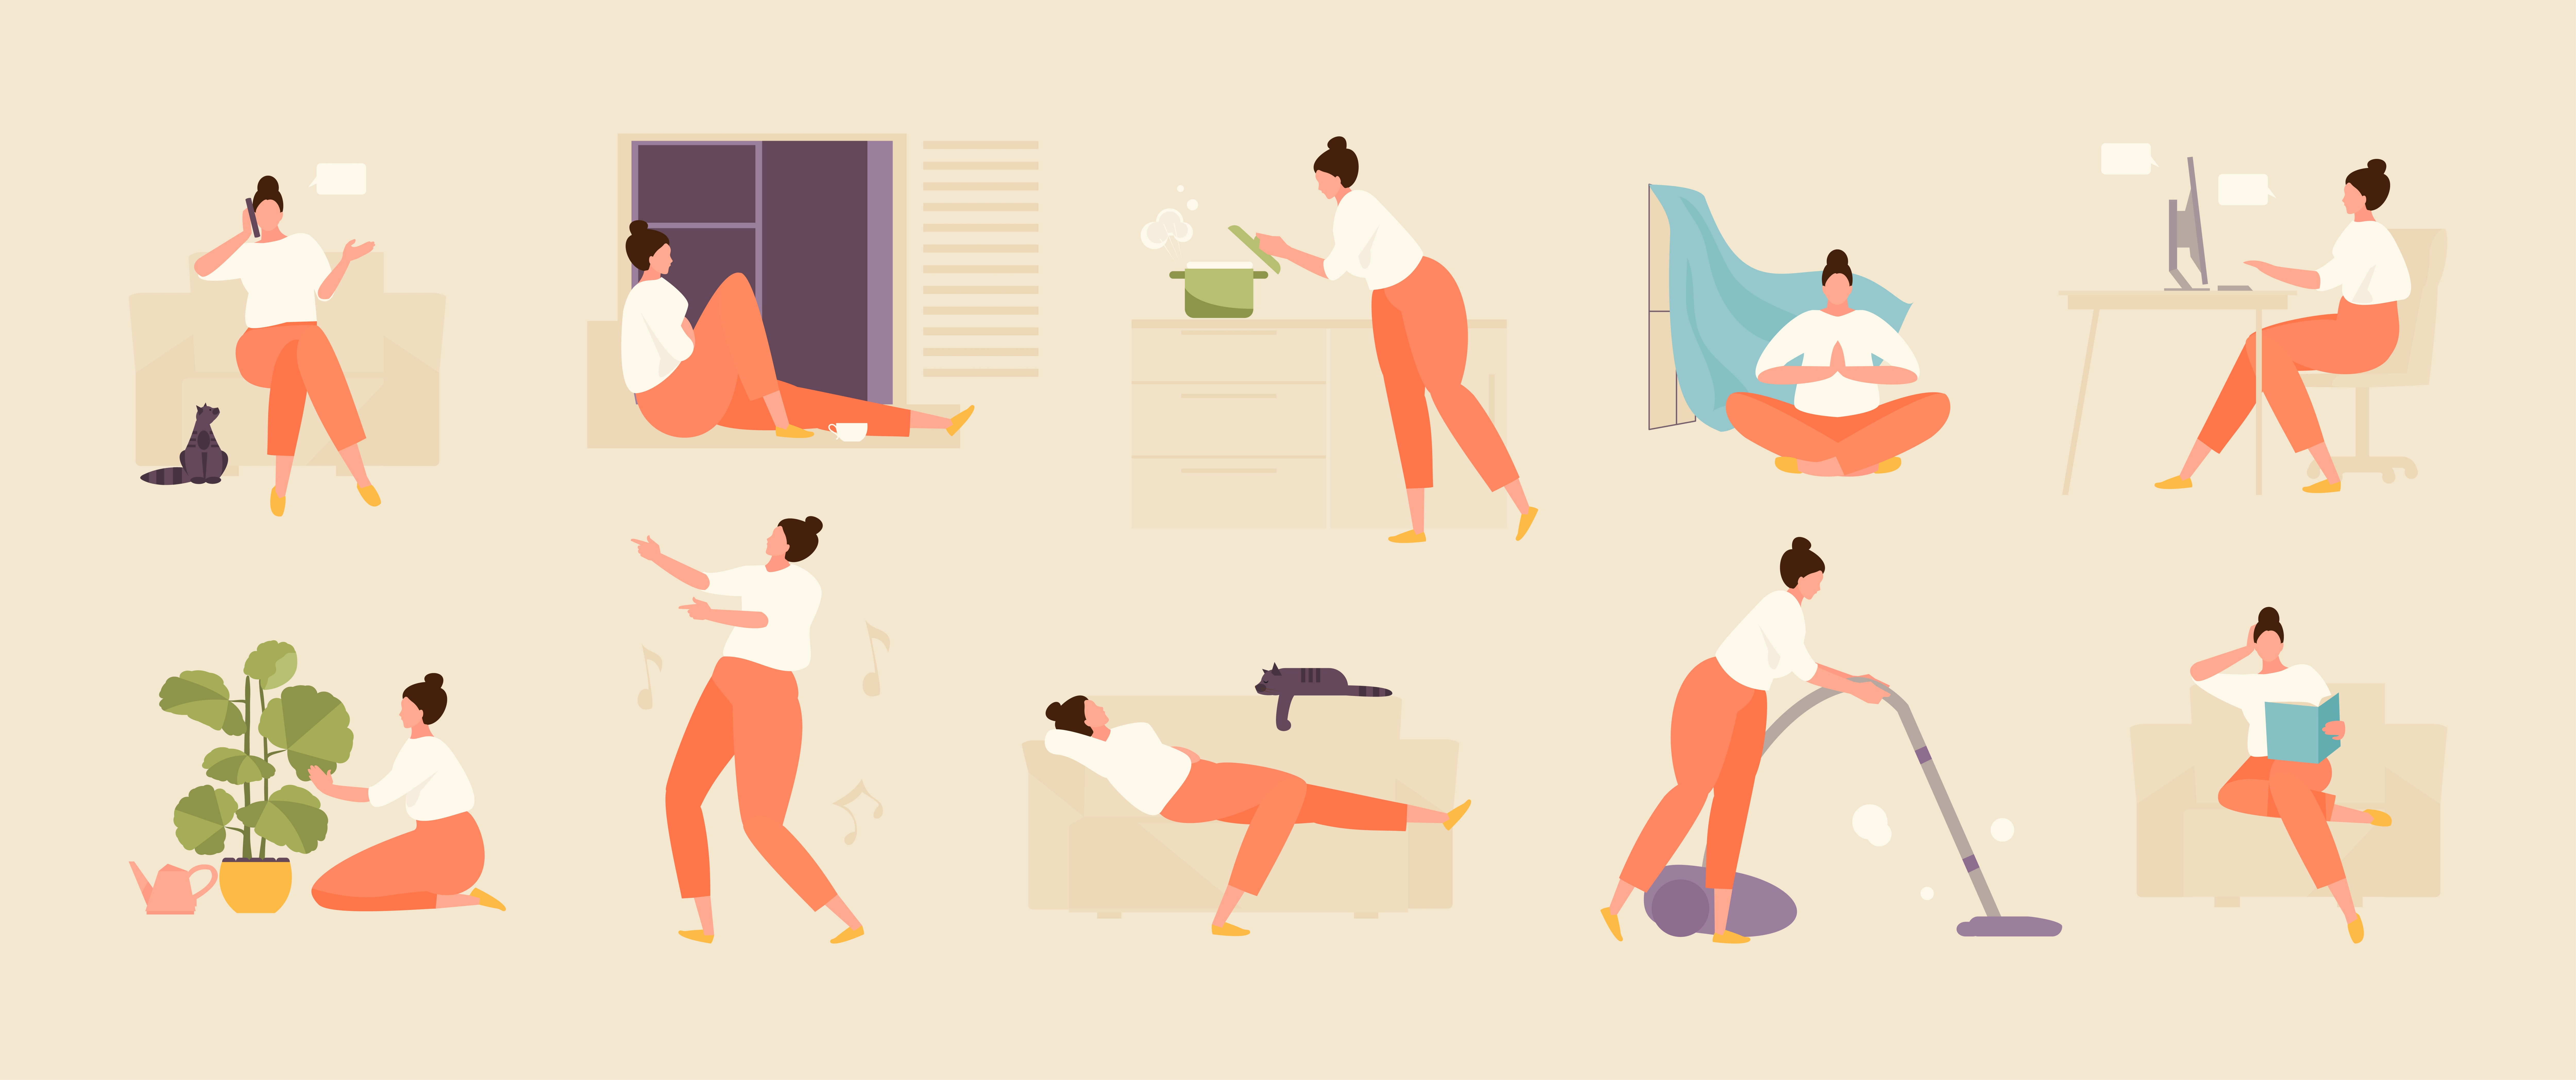 a woman's daily routine illustration